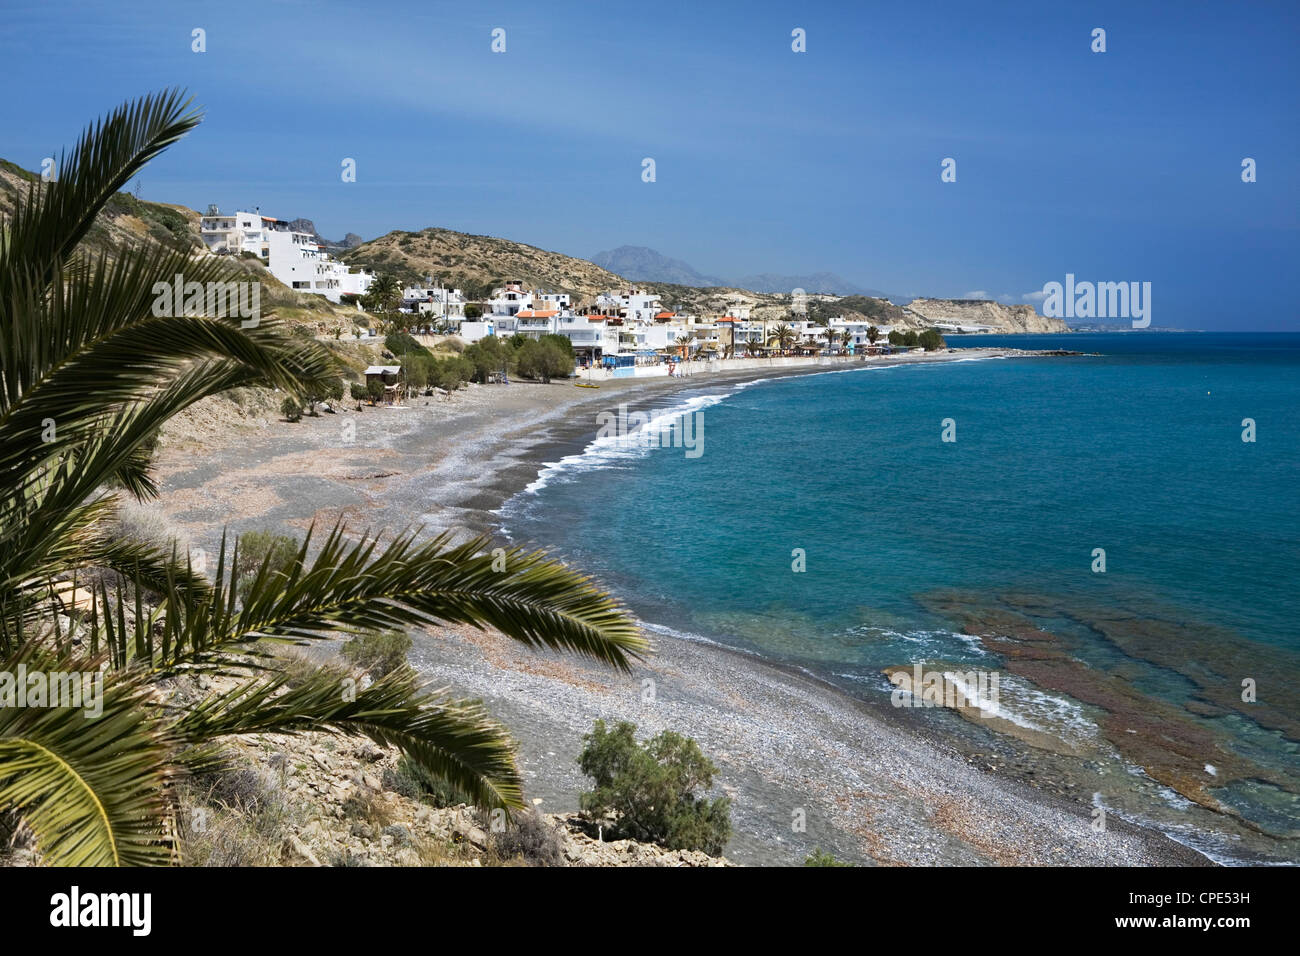 Beach view, Mirtos, Lasithi region, Crete, Greek Islands, Greece, Europe - Stock Image